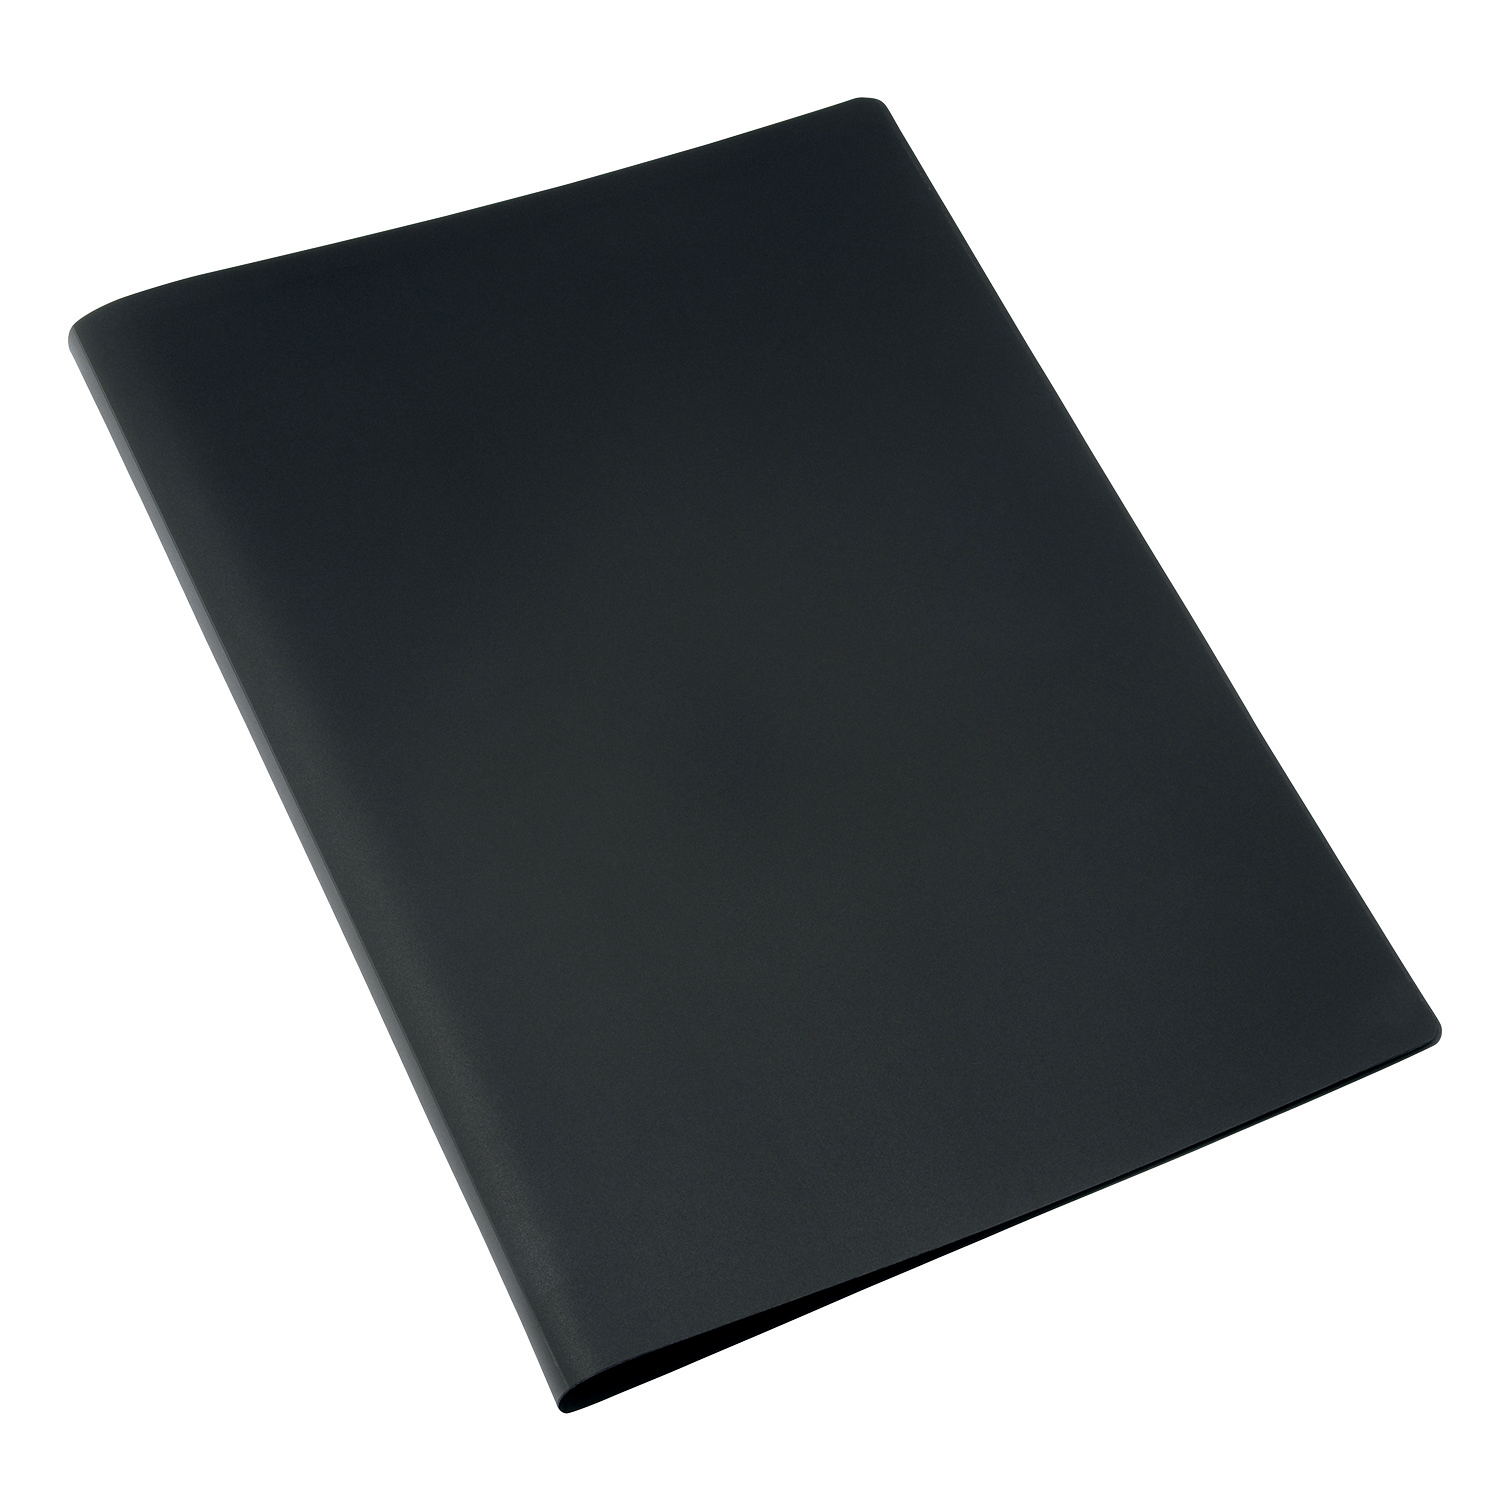 Display Books 5 Star Office Display Book Soft Cover Lightweight Polypropylene 20 Pockets A4 Black